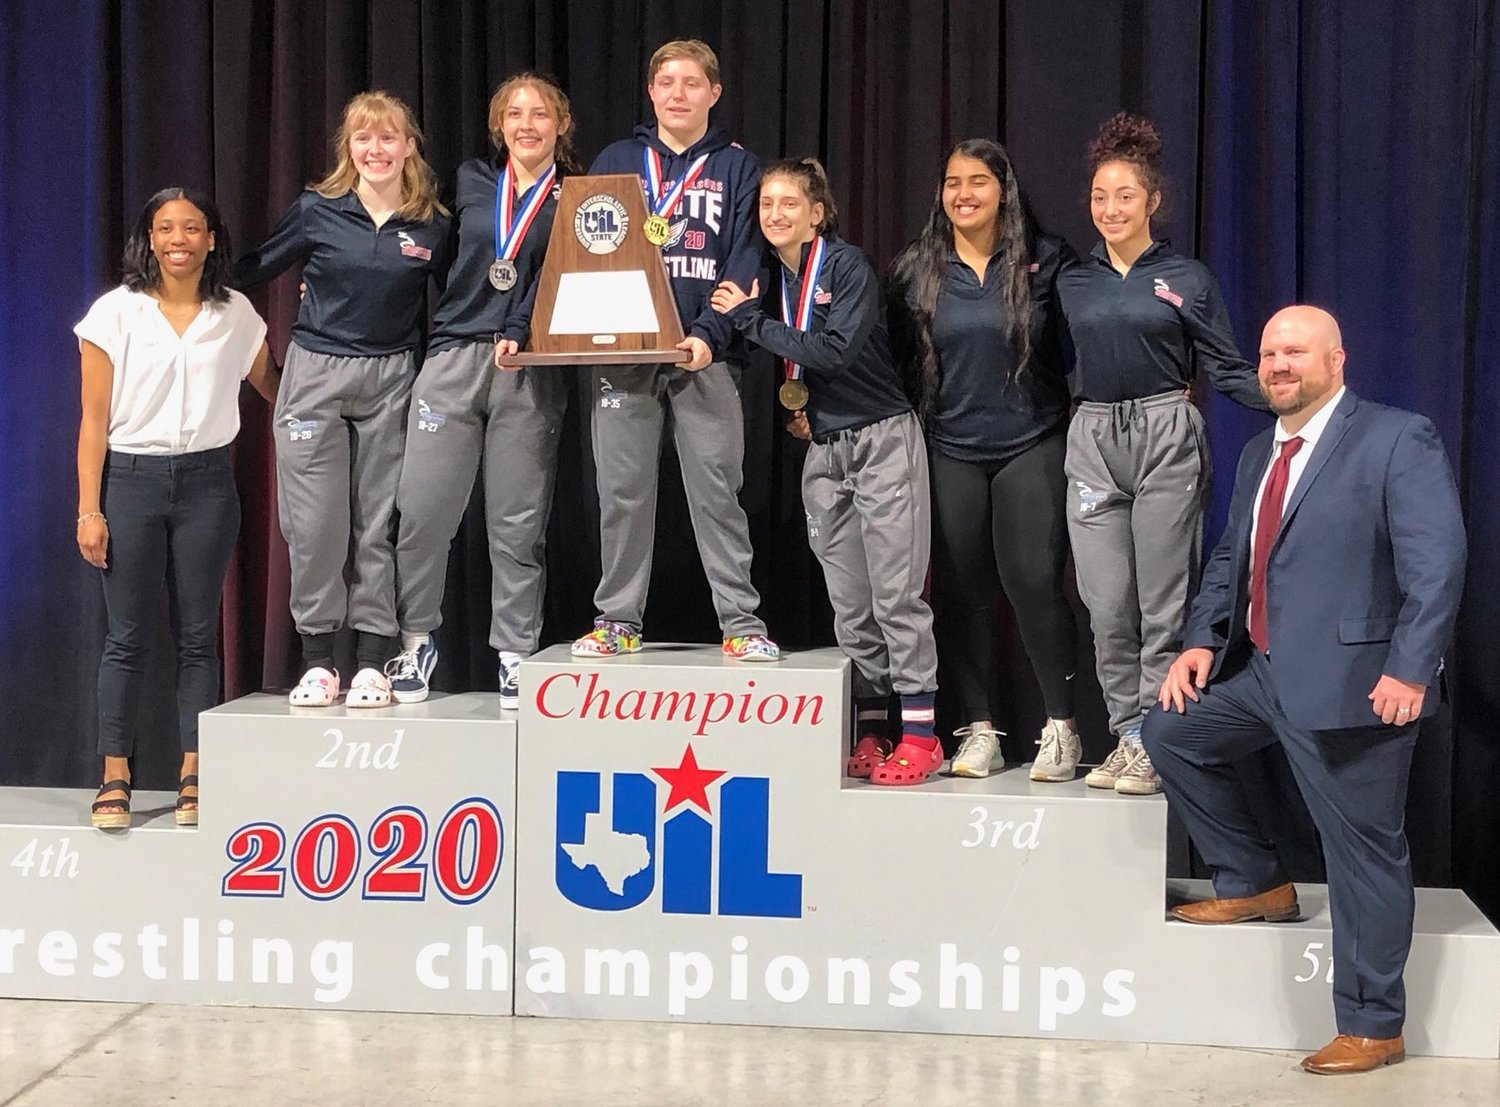 Tompkins' girls finished second overall as a team behind state champ Euless Trinity at the UIL Class 6A state tournament. The Falcons scored 75 points, 13 behind Euless Trinity.